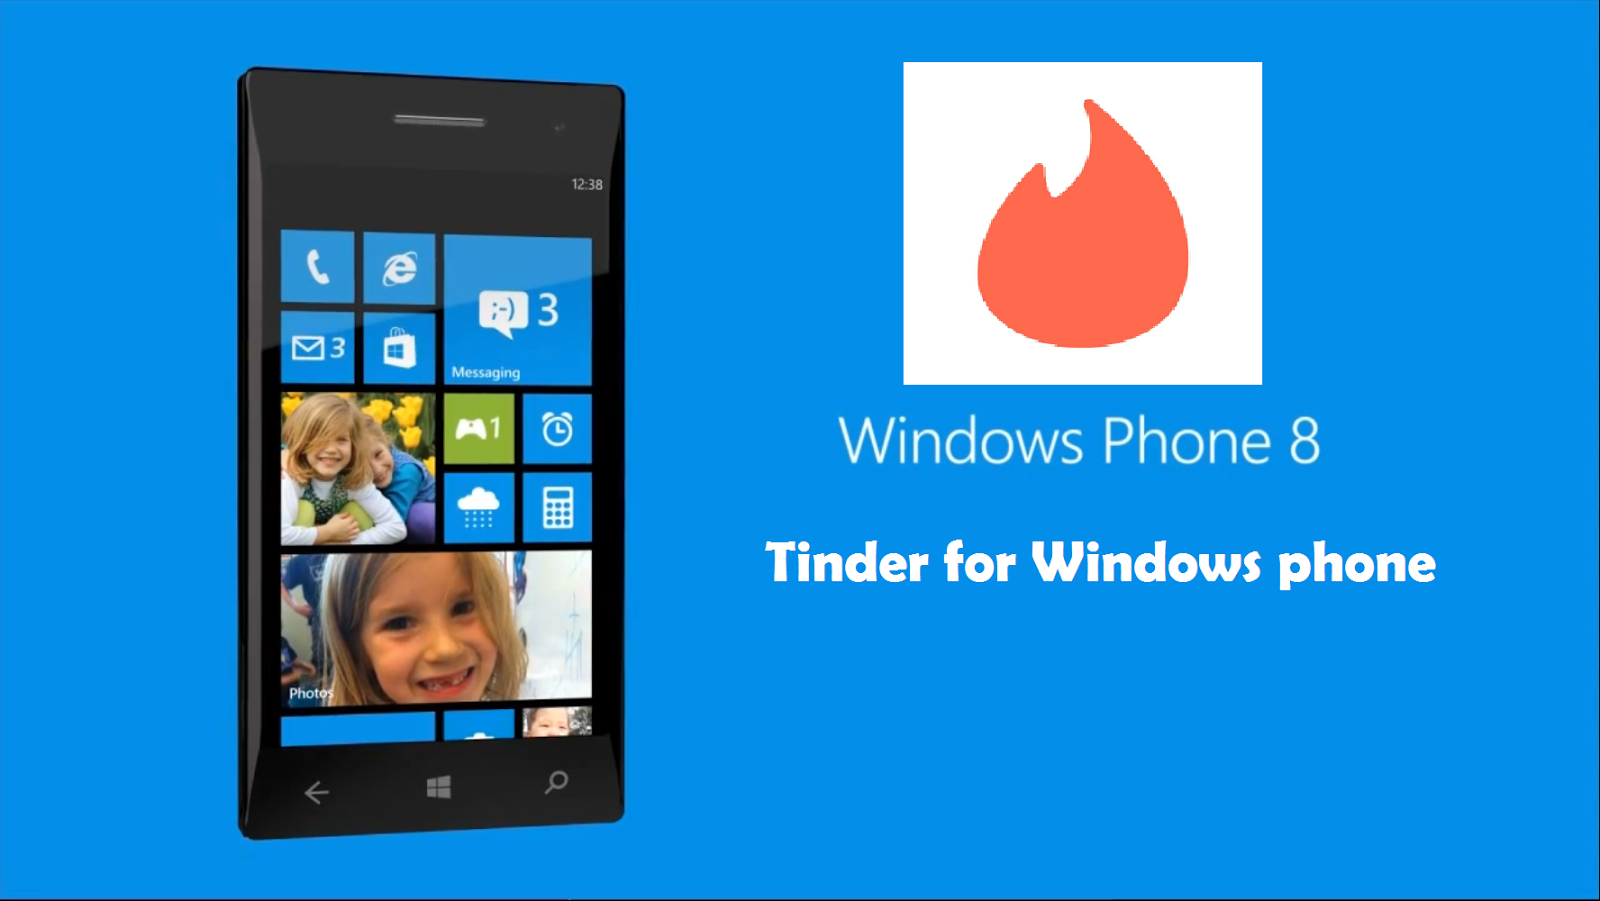 tinder for windows phone free download